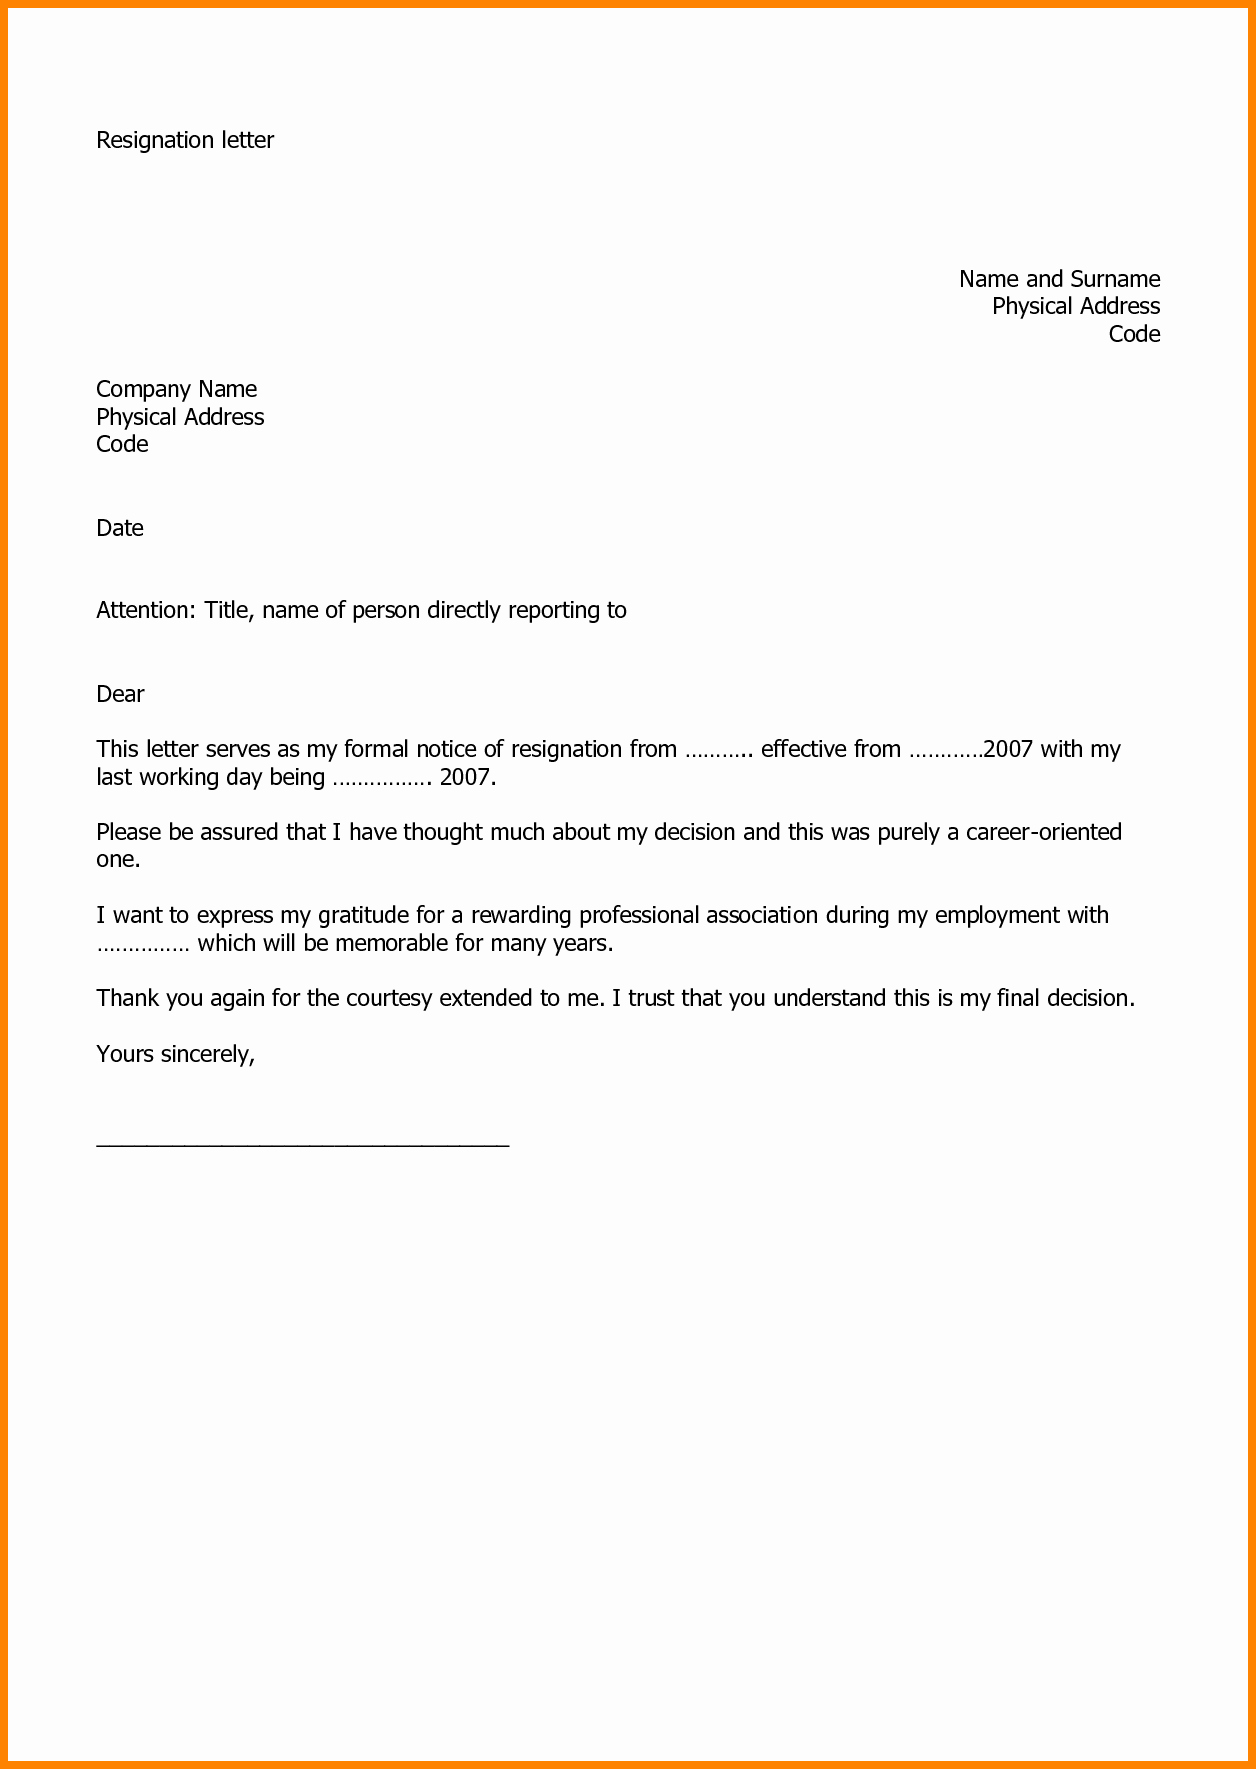 Letter Of Resignation Templates Best Of Pin by Mike Marischler On Health